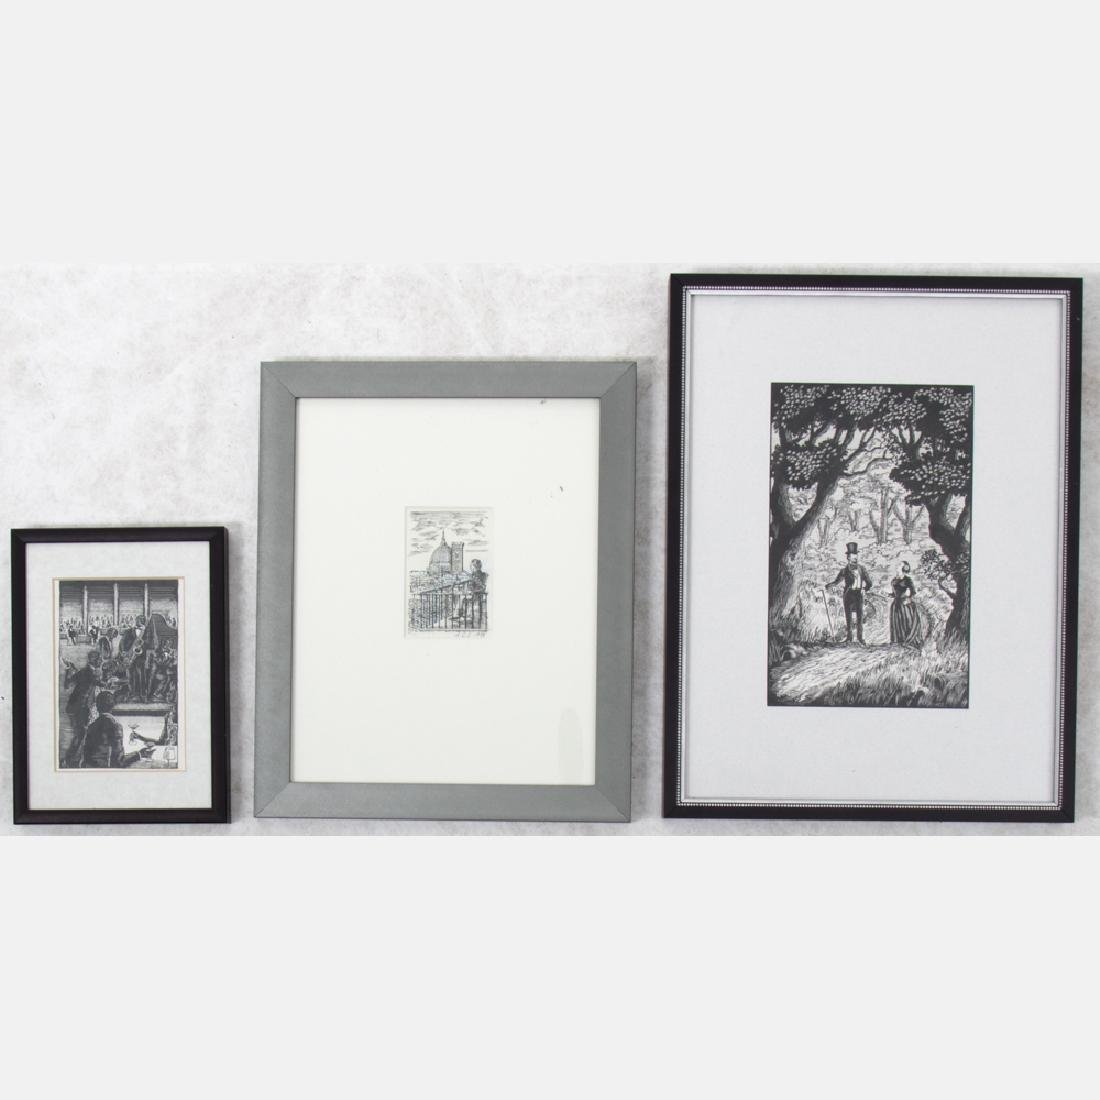 A Group of Three Framed Ink Scratchboard Drawings by